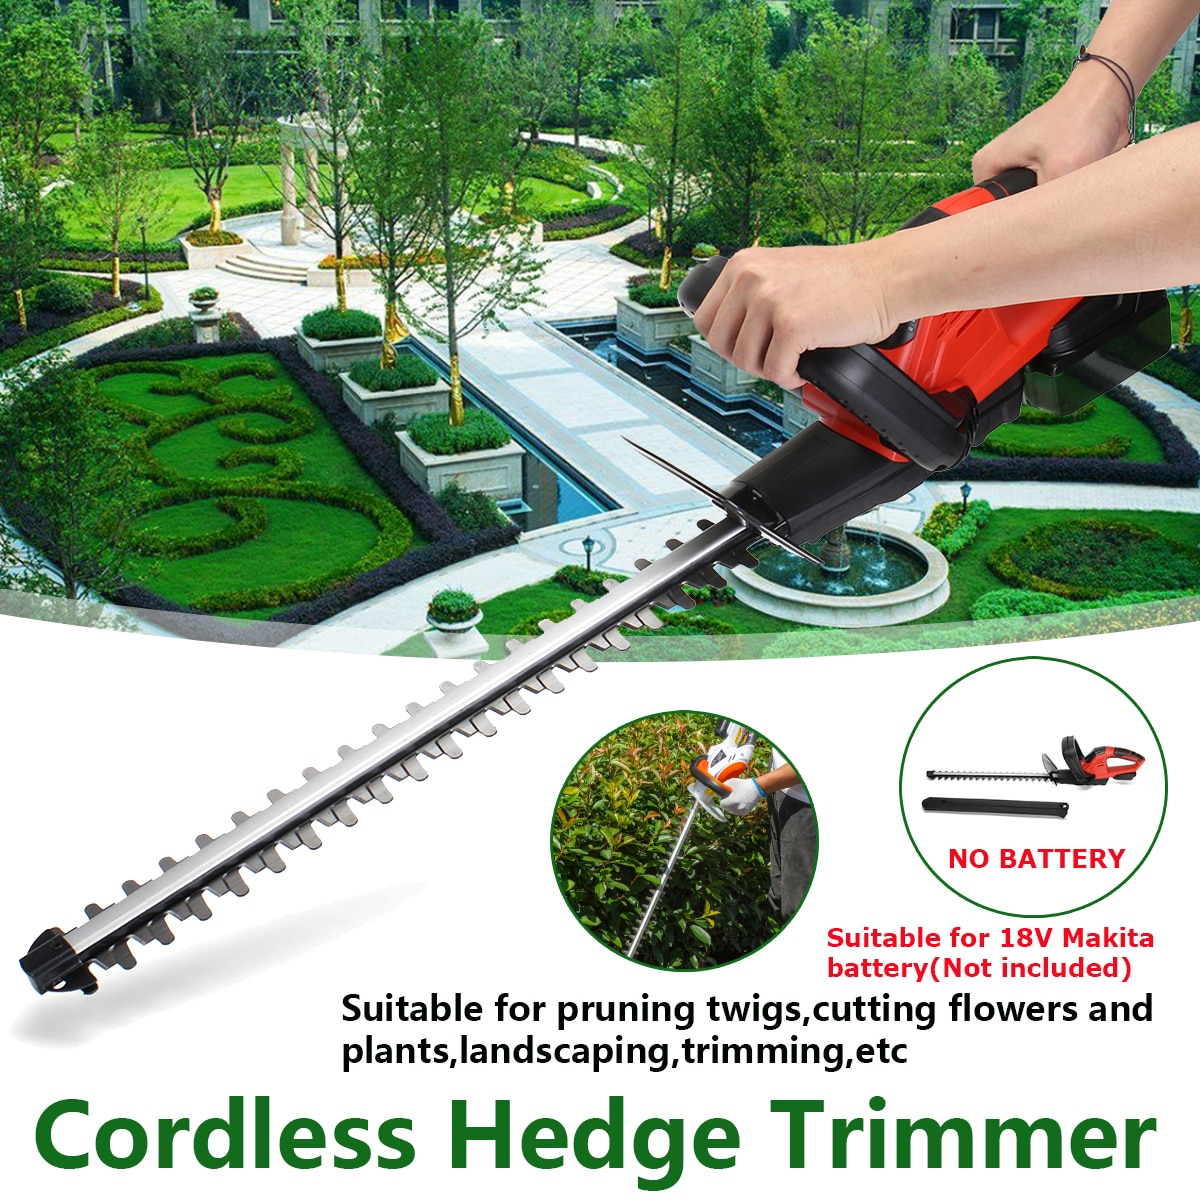 21V Electric Trimmer Brussless Cordless Hedge Trimmer Weeding Shear Electric Pruning Saw with Dual Blade For 18V Makita battery